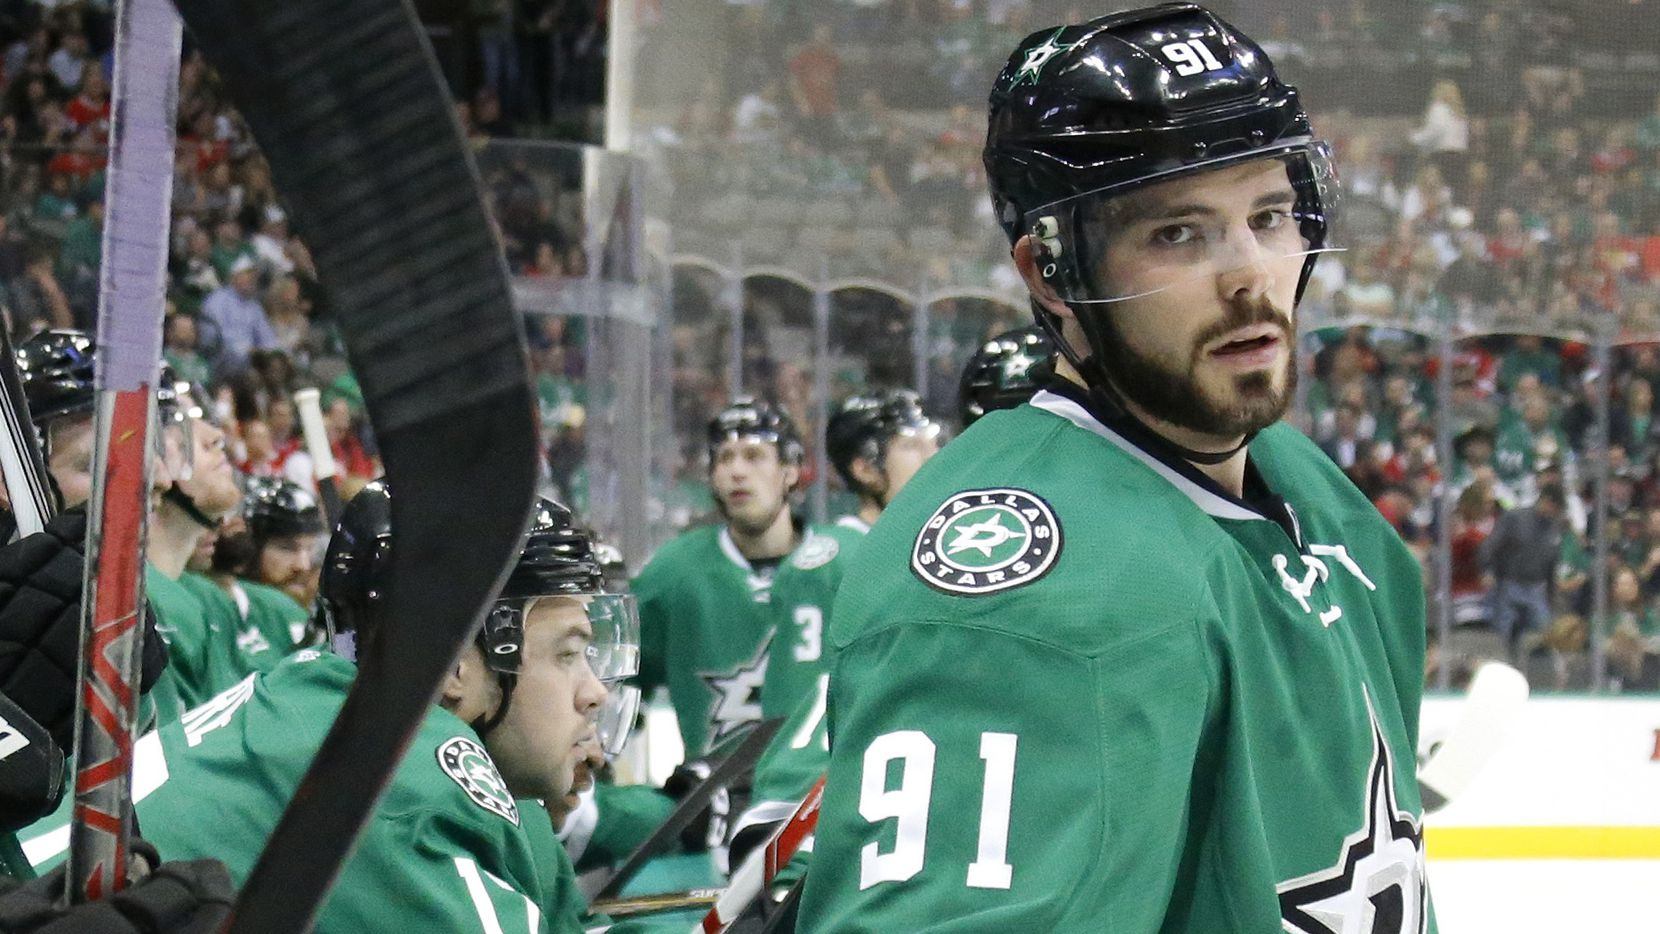 Dallas Stars center Tyler Seguin (91) is pictured during the Chicago Blackhawks vs. the Dallas Stars NHL hockey game at the American Airlines Center in Dallas on Saturday, November 5, 2016. (Louis DeLuca/The Dallas Morning News)